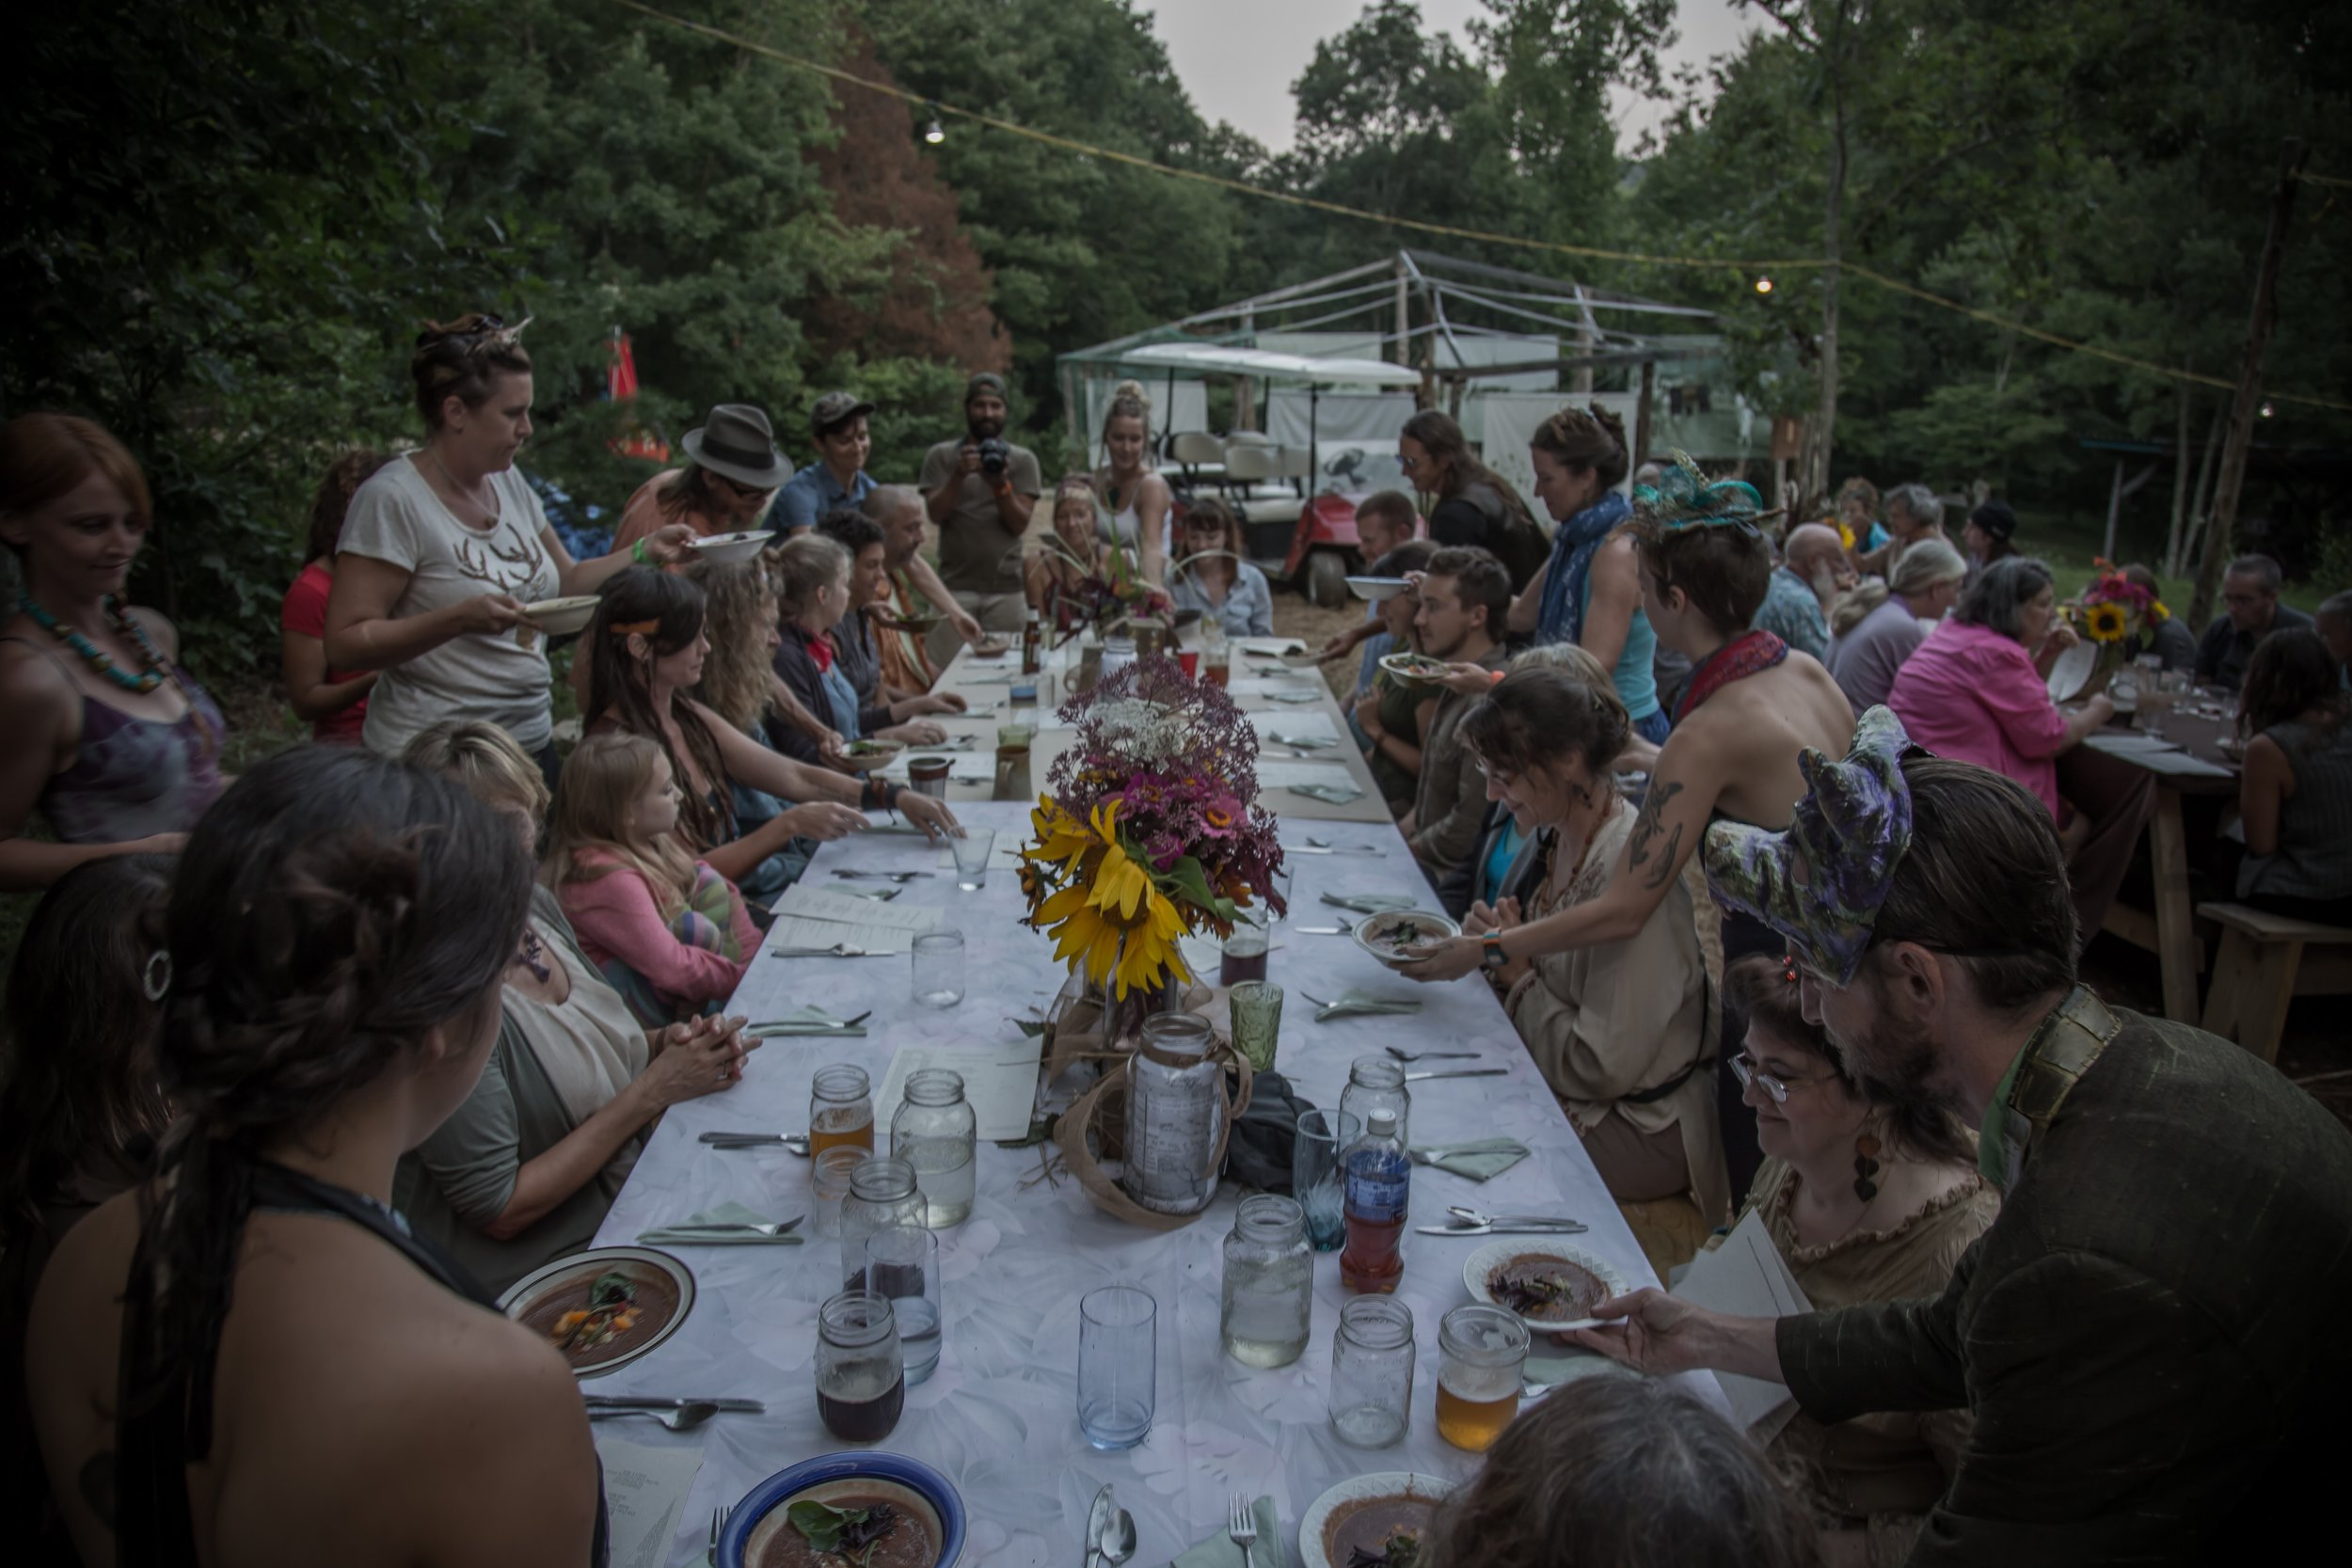 Over 100 people were served a farm-fresh outdoor community meal as part of Land, Water, Food, Story in 2014. (photo by Melisa Cardona)